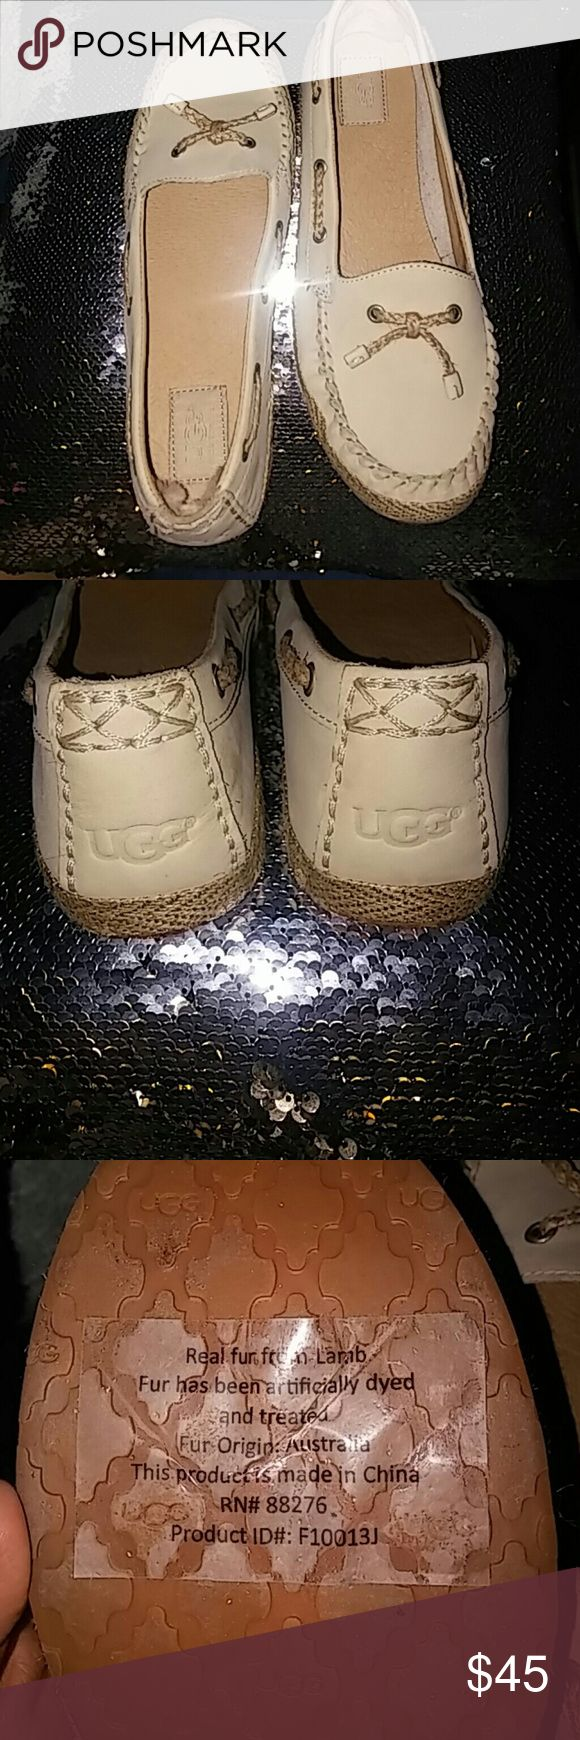 Ugg moccasins new New size 9 ugg moccasins used once in house UGG Shoes Flats & Loafers